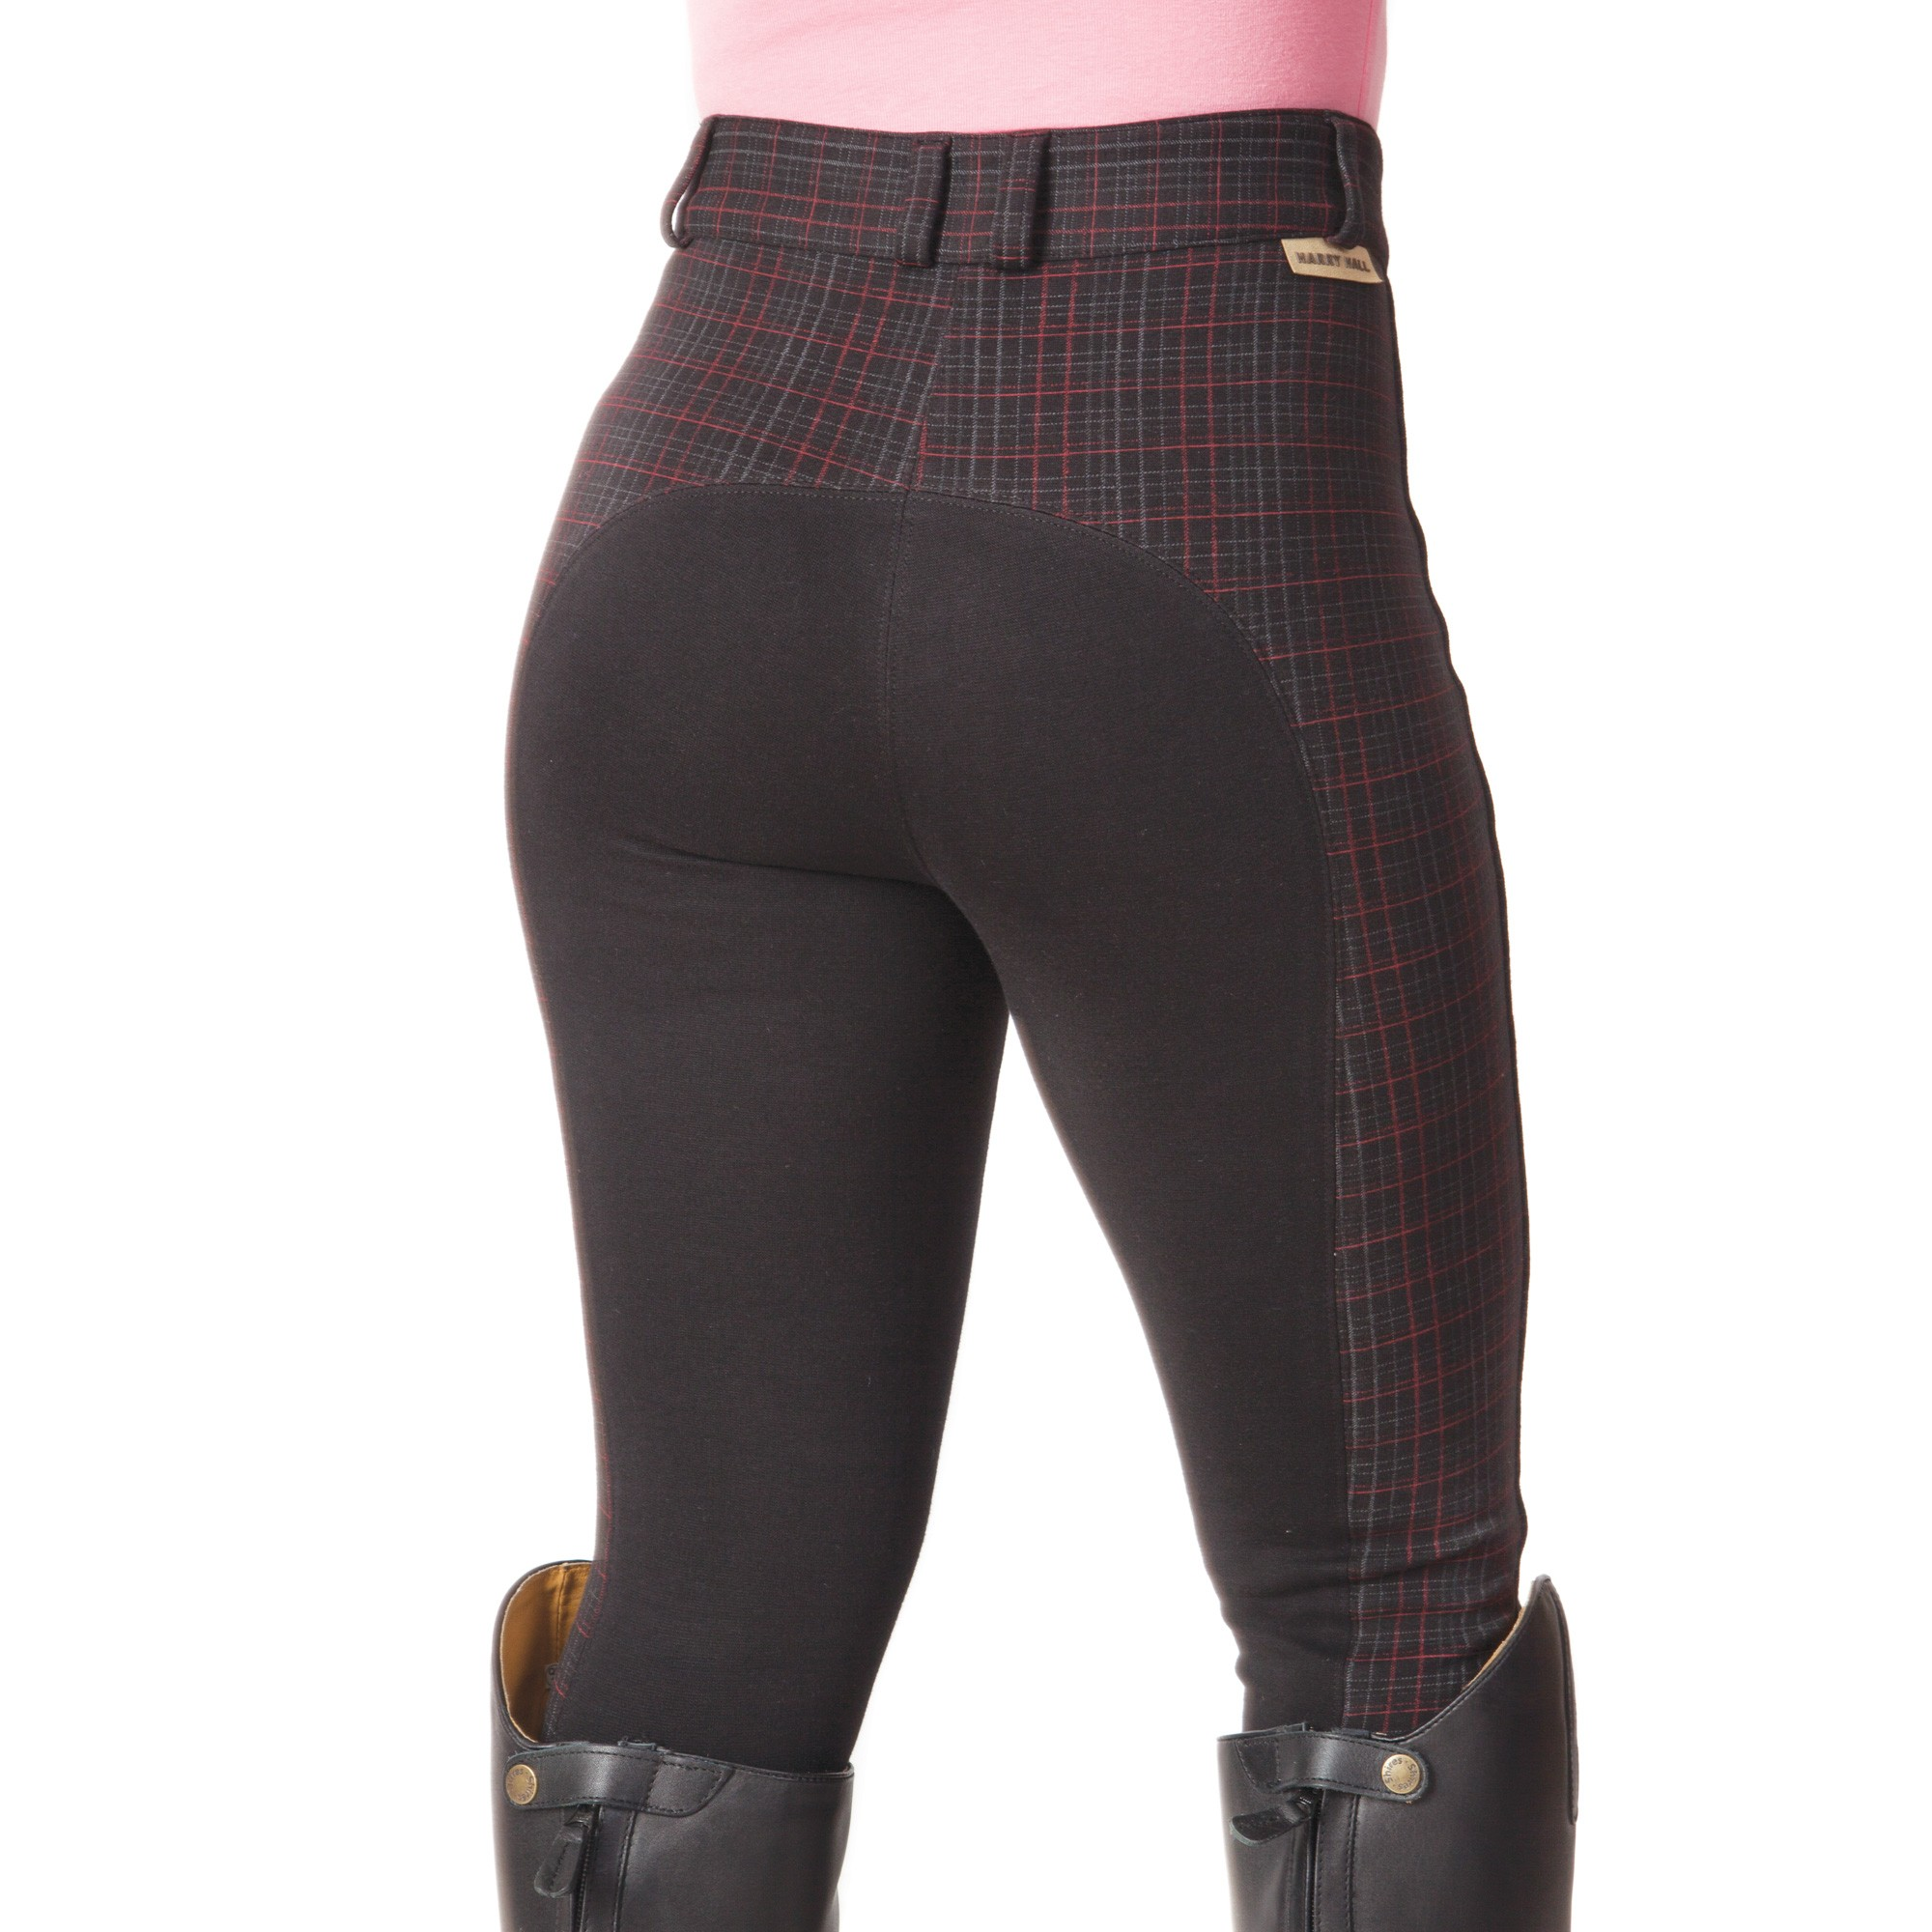 Harry Hall Queensbury Ladies Jodhpurs GBP3499 The Ranch Store